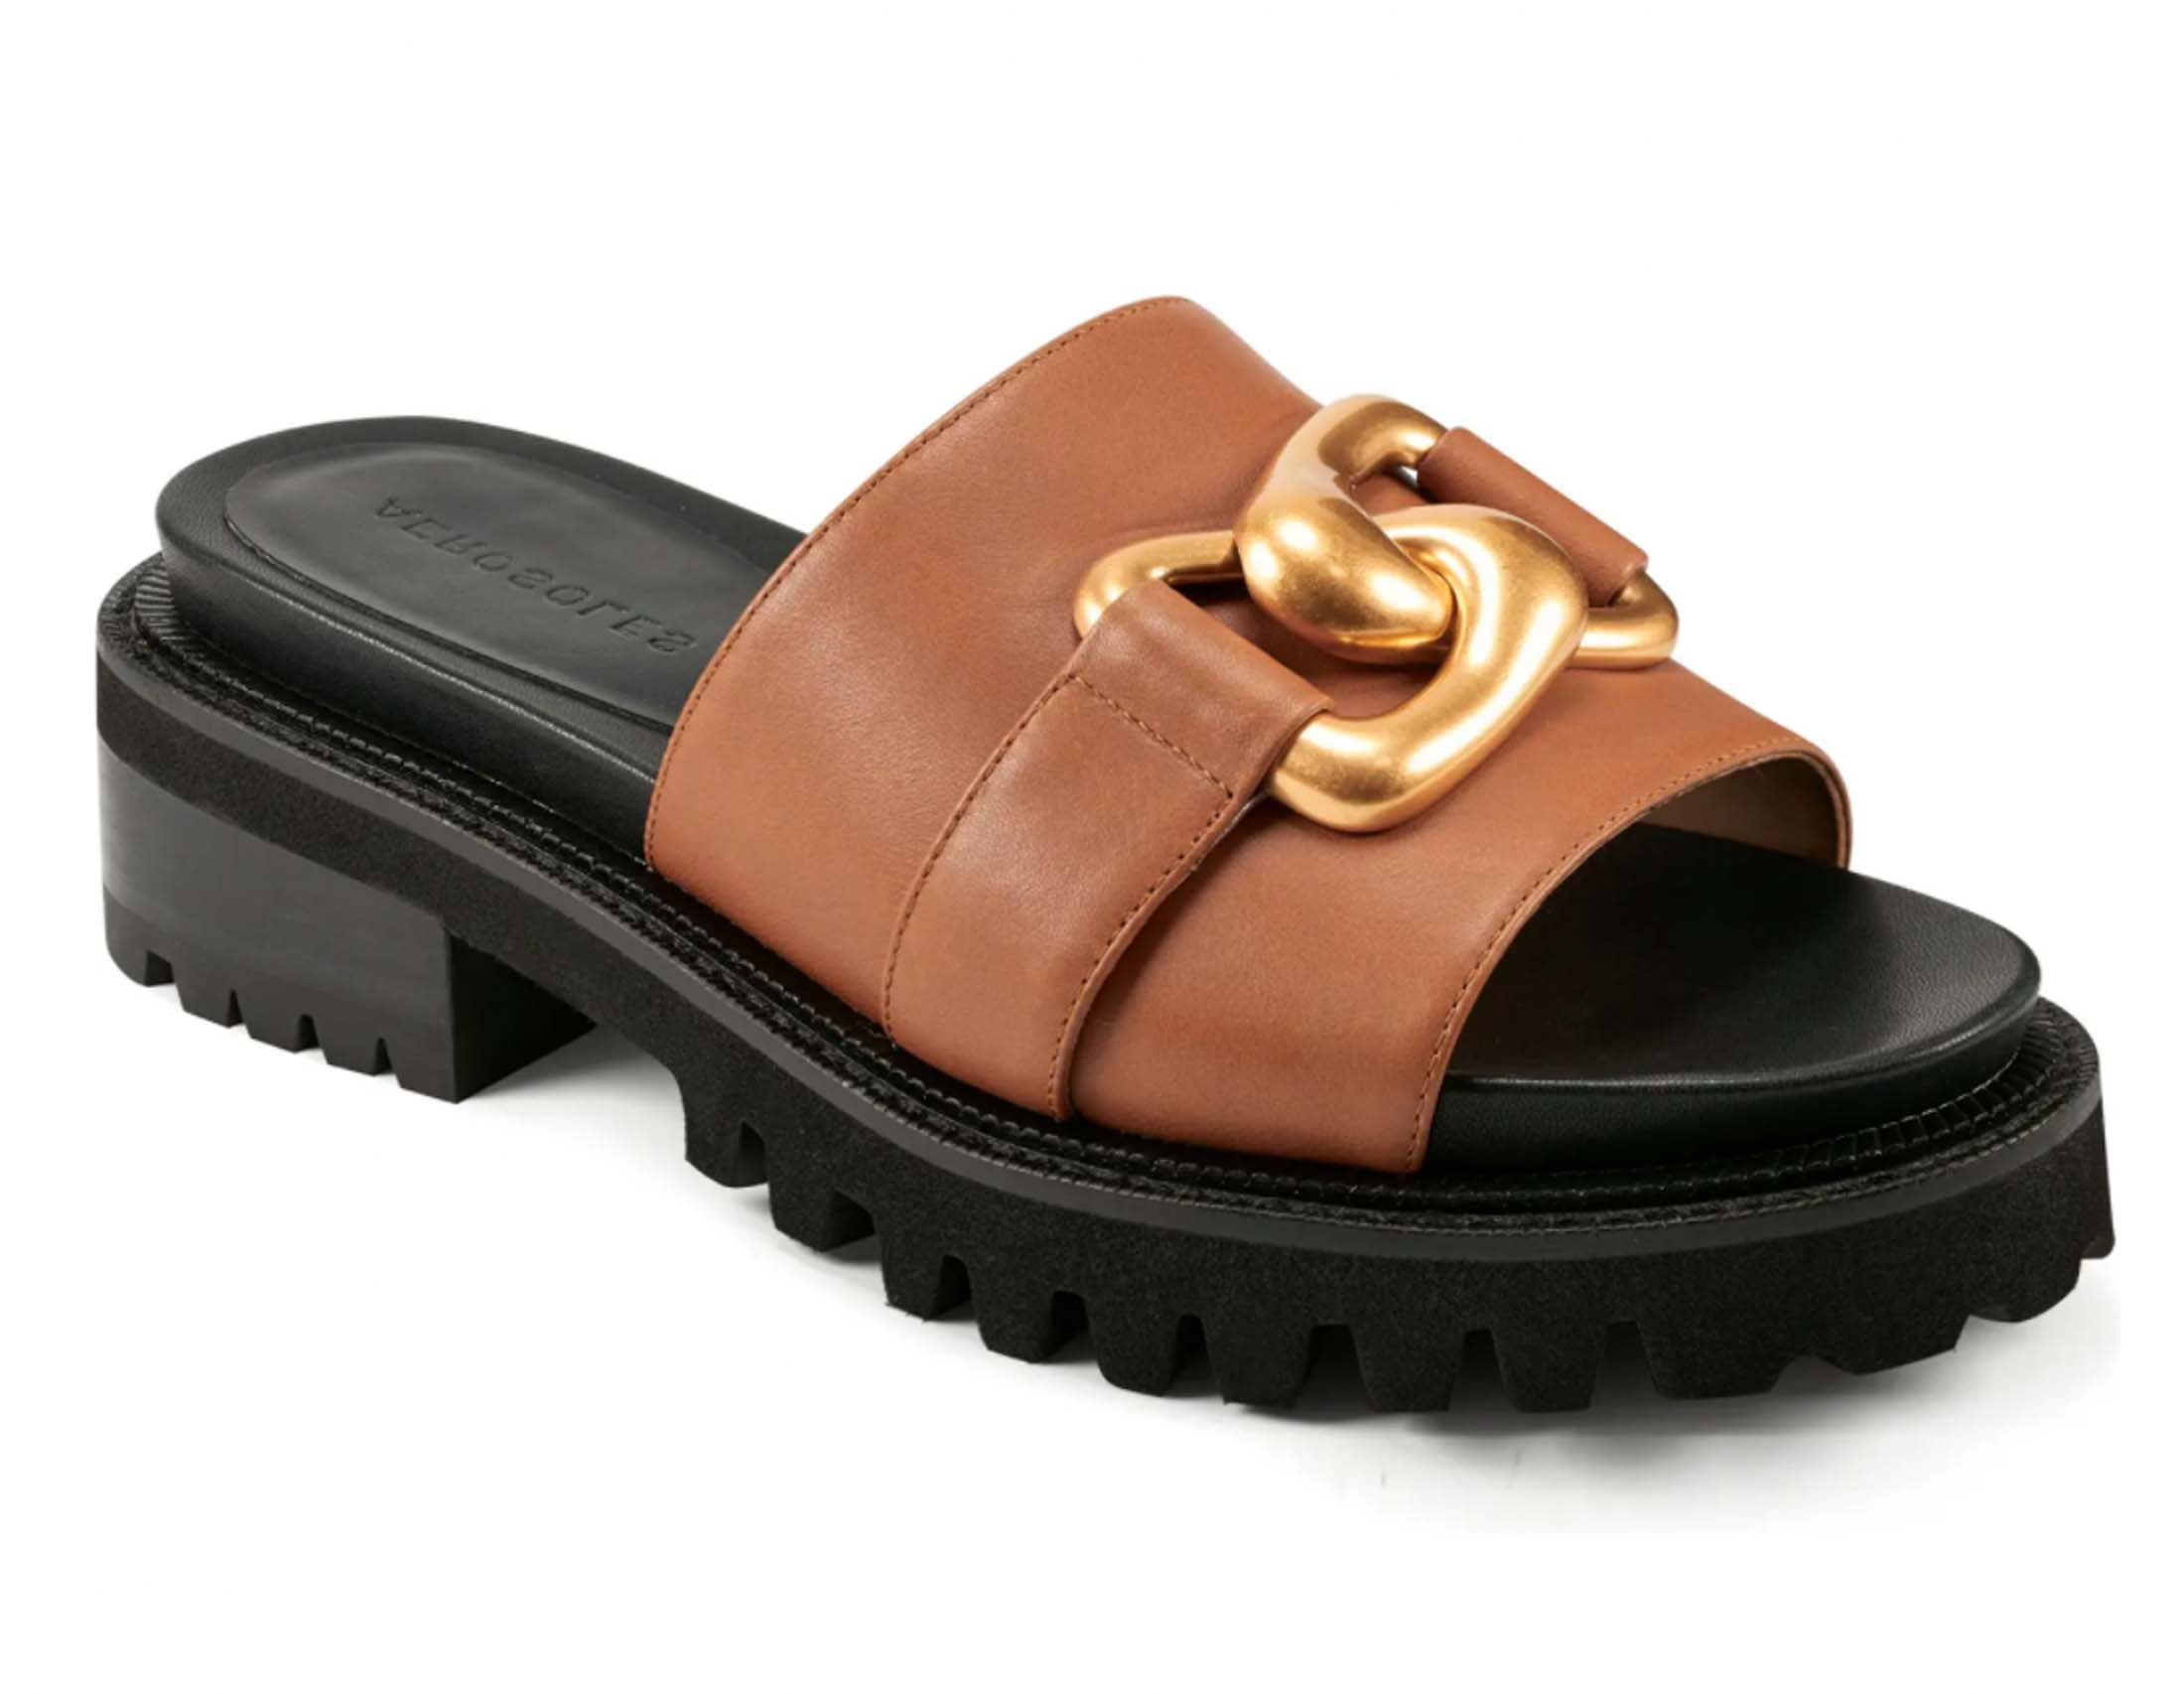 I LOVE everything about these slide sandals. They are absolutely gorgeous and perfect for summer and fall.